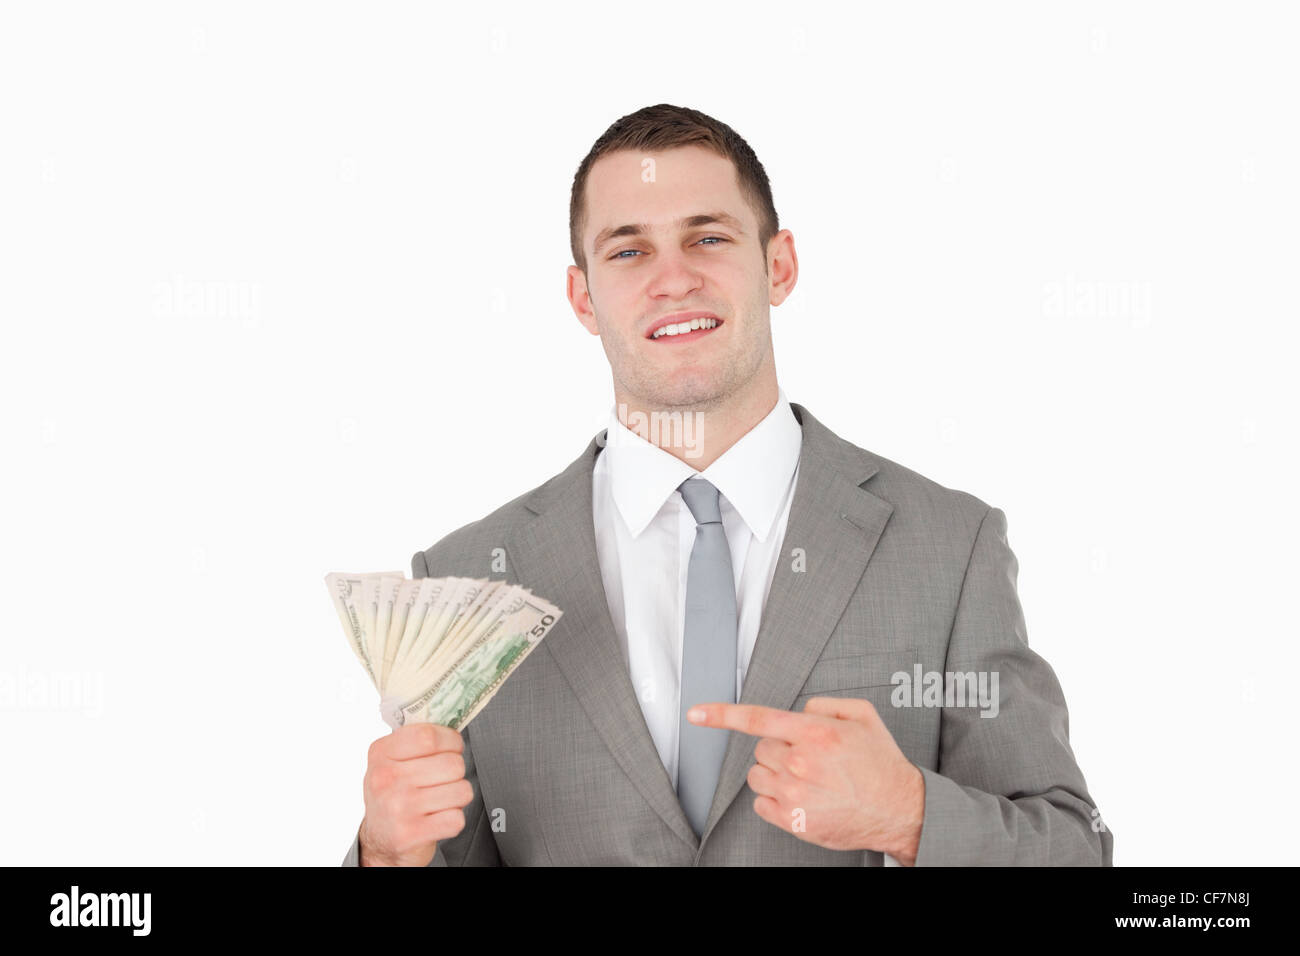 Businessman pointing at a wad of cash - Stock Image